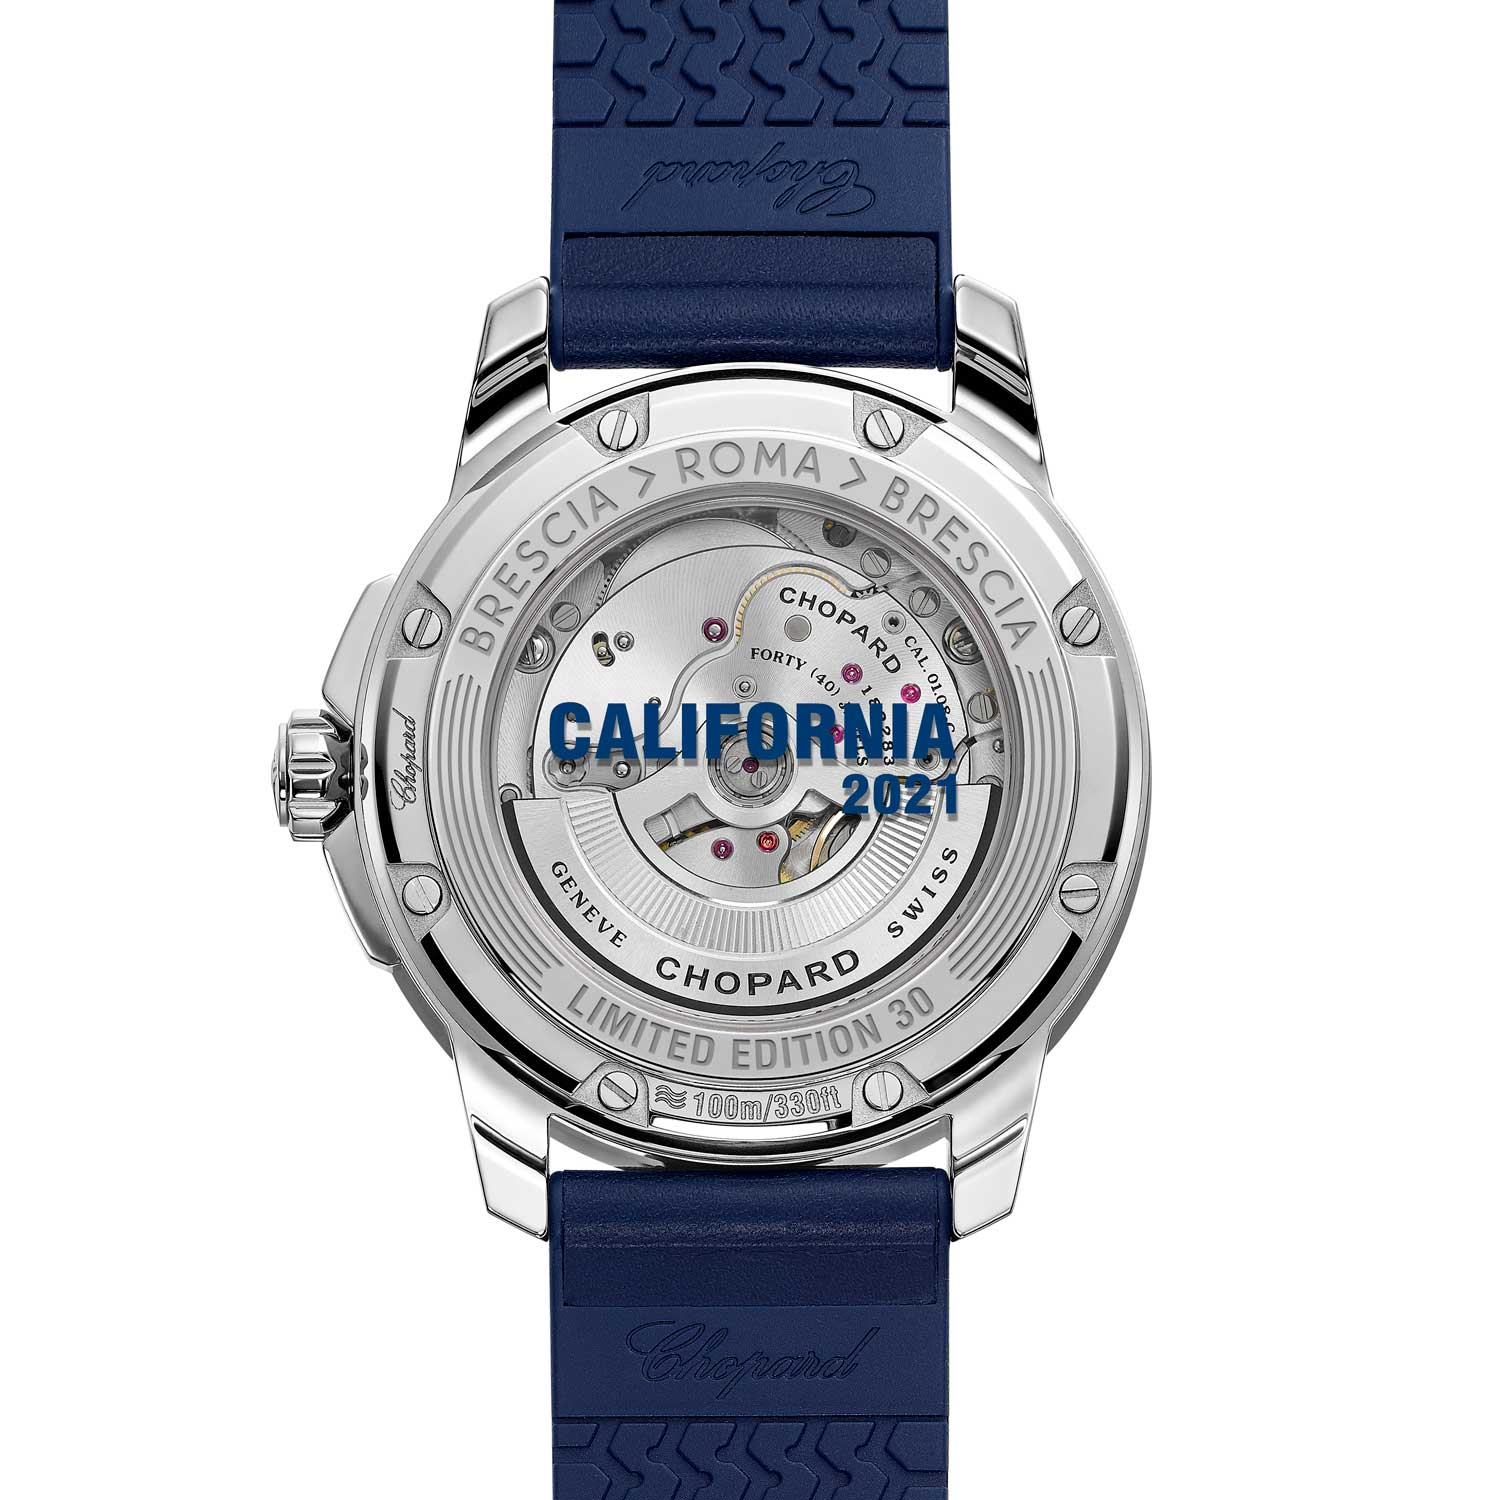 """The watch has """"Limited Edition 30"""" and """"Brescia-Roma-Brescia"""" engraved on the caseback and """"California 2021"""" in blue printed directly on the sapphire crystal."""